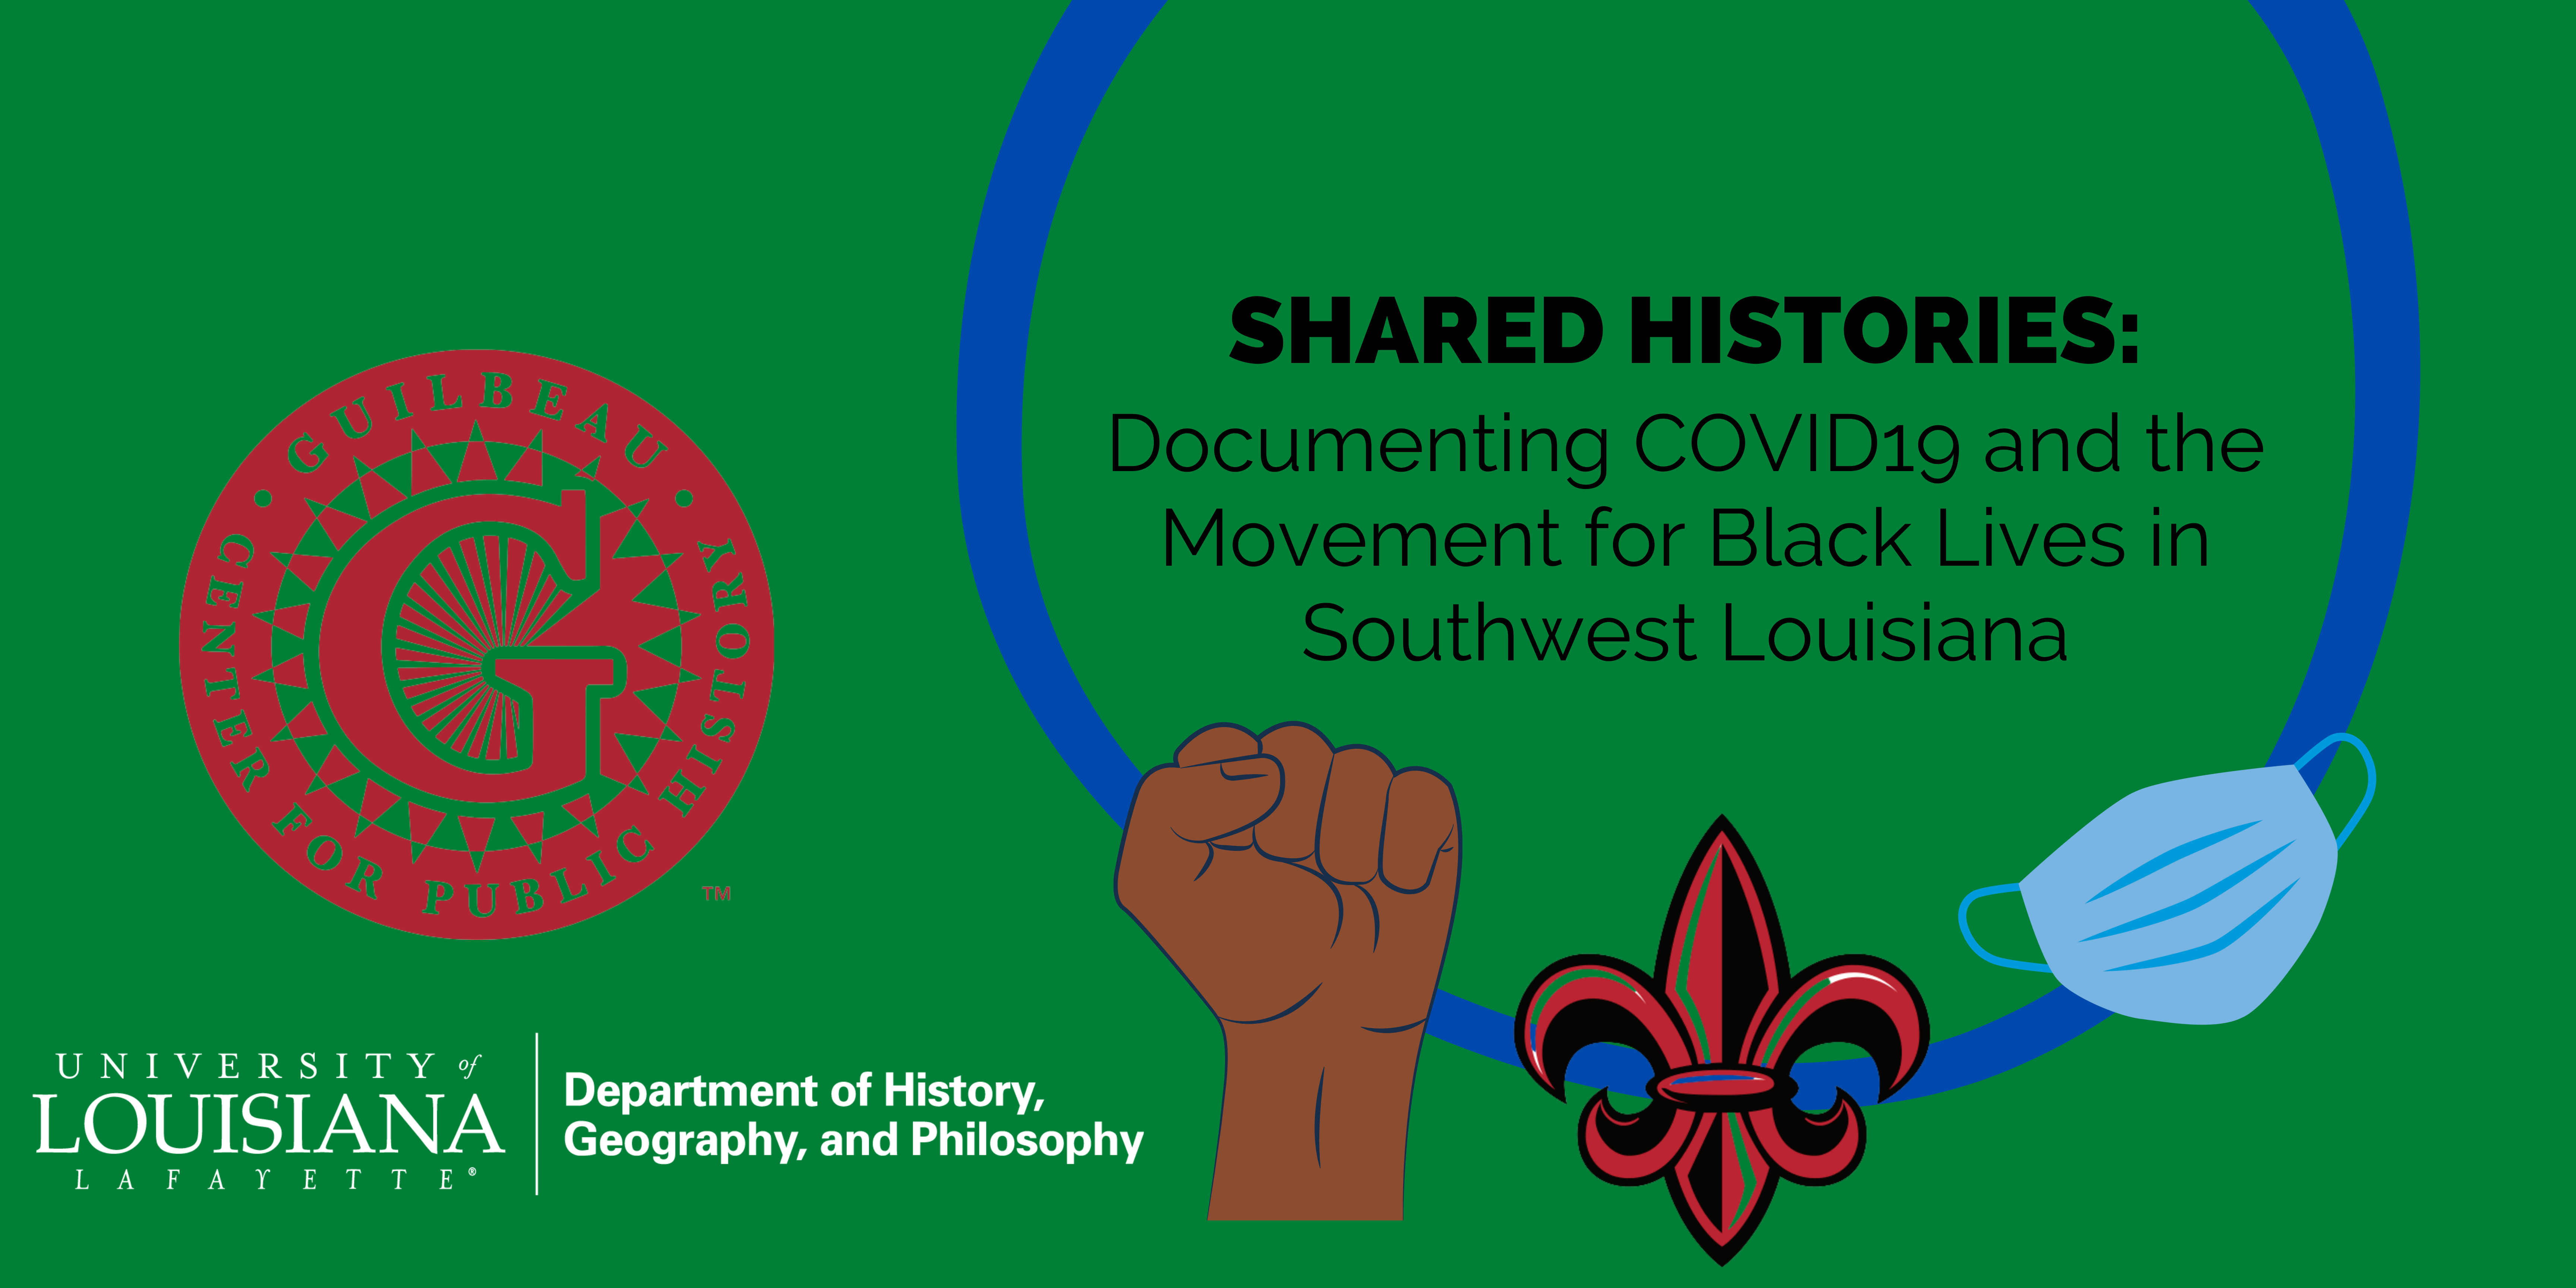 Shared Histories: Documenting Covid-19 and the Movement for Black Lives in Southwest Louisiana